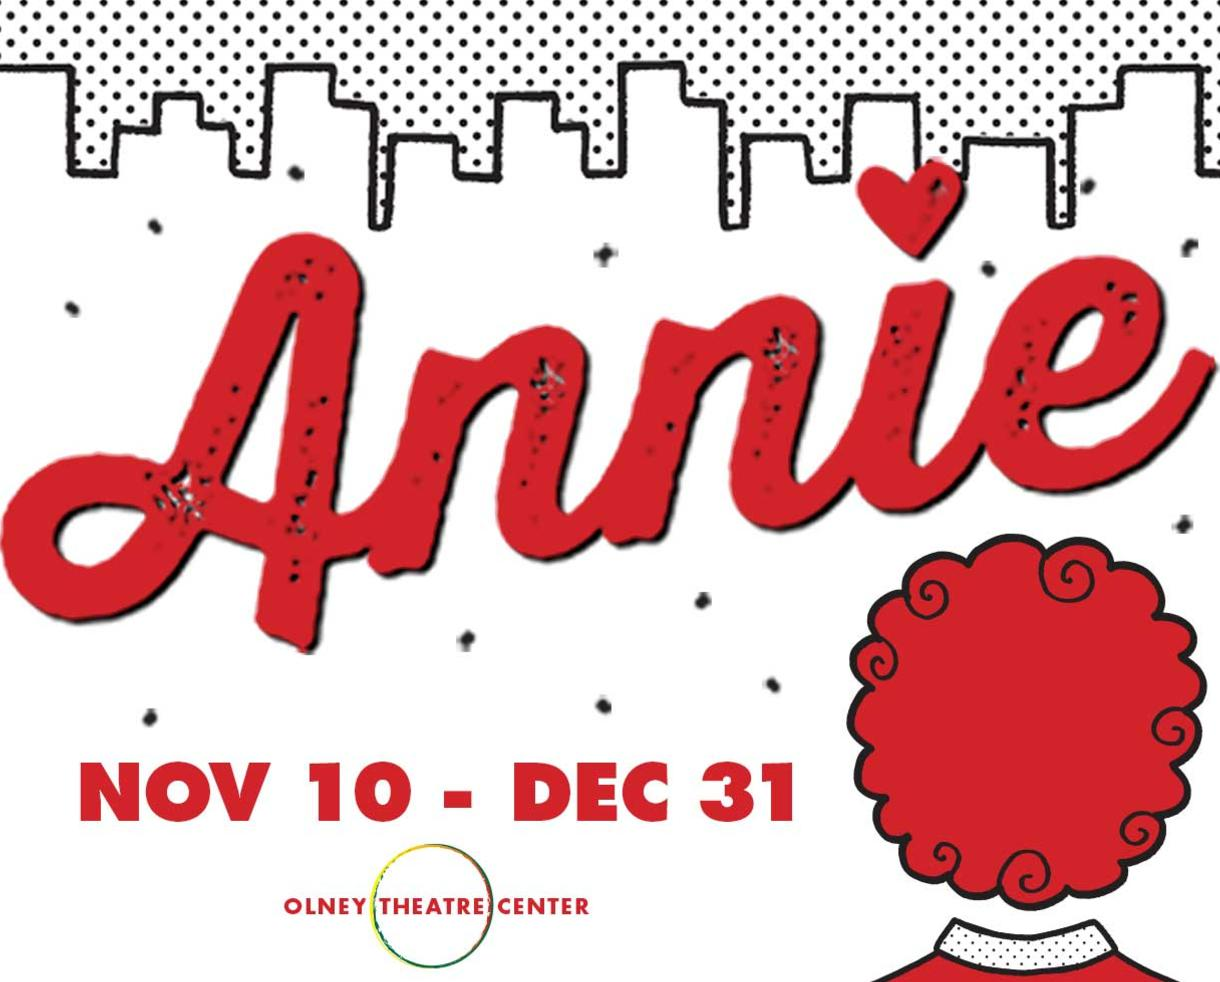 $50 for Annie at The Olney Theatre - MORE DATES ADDED! (Up to 41% Off)